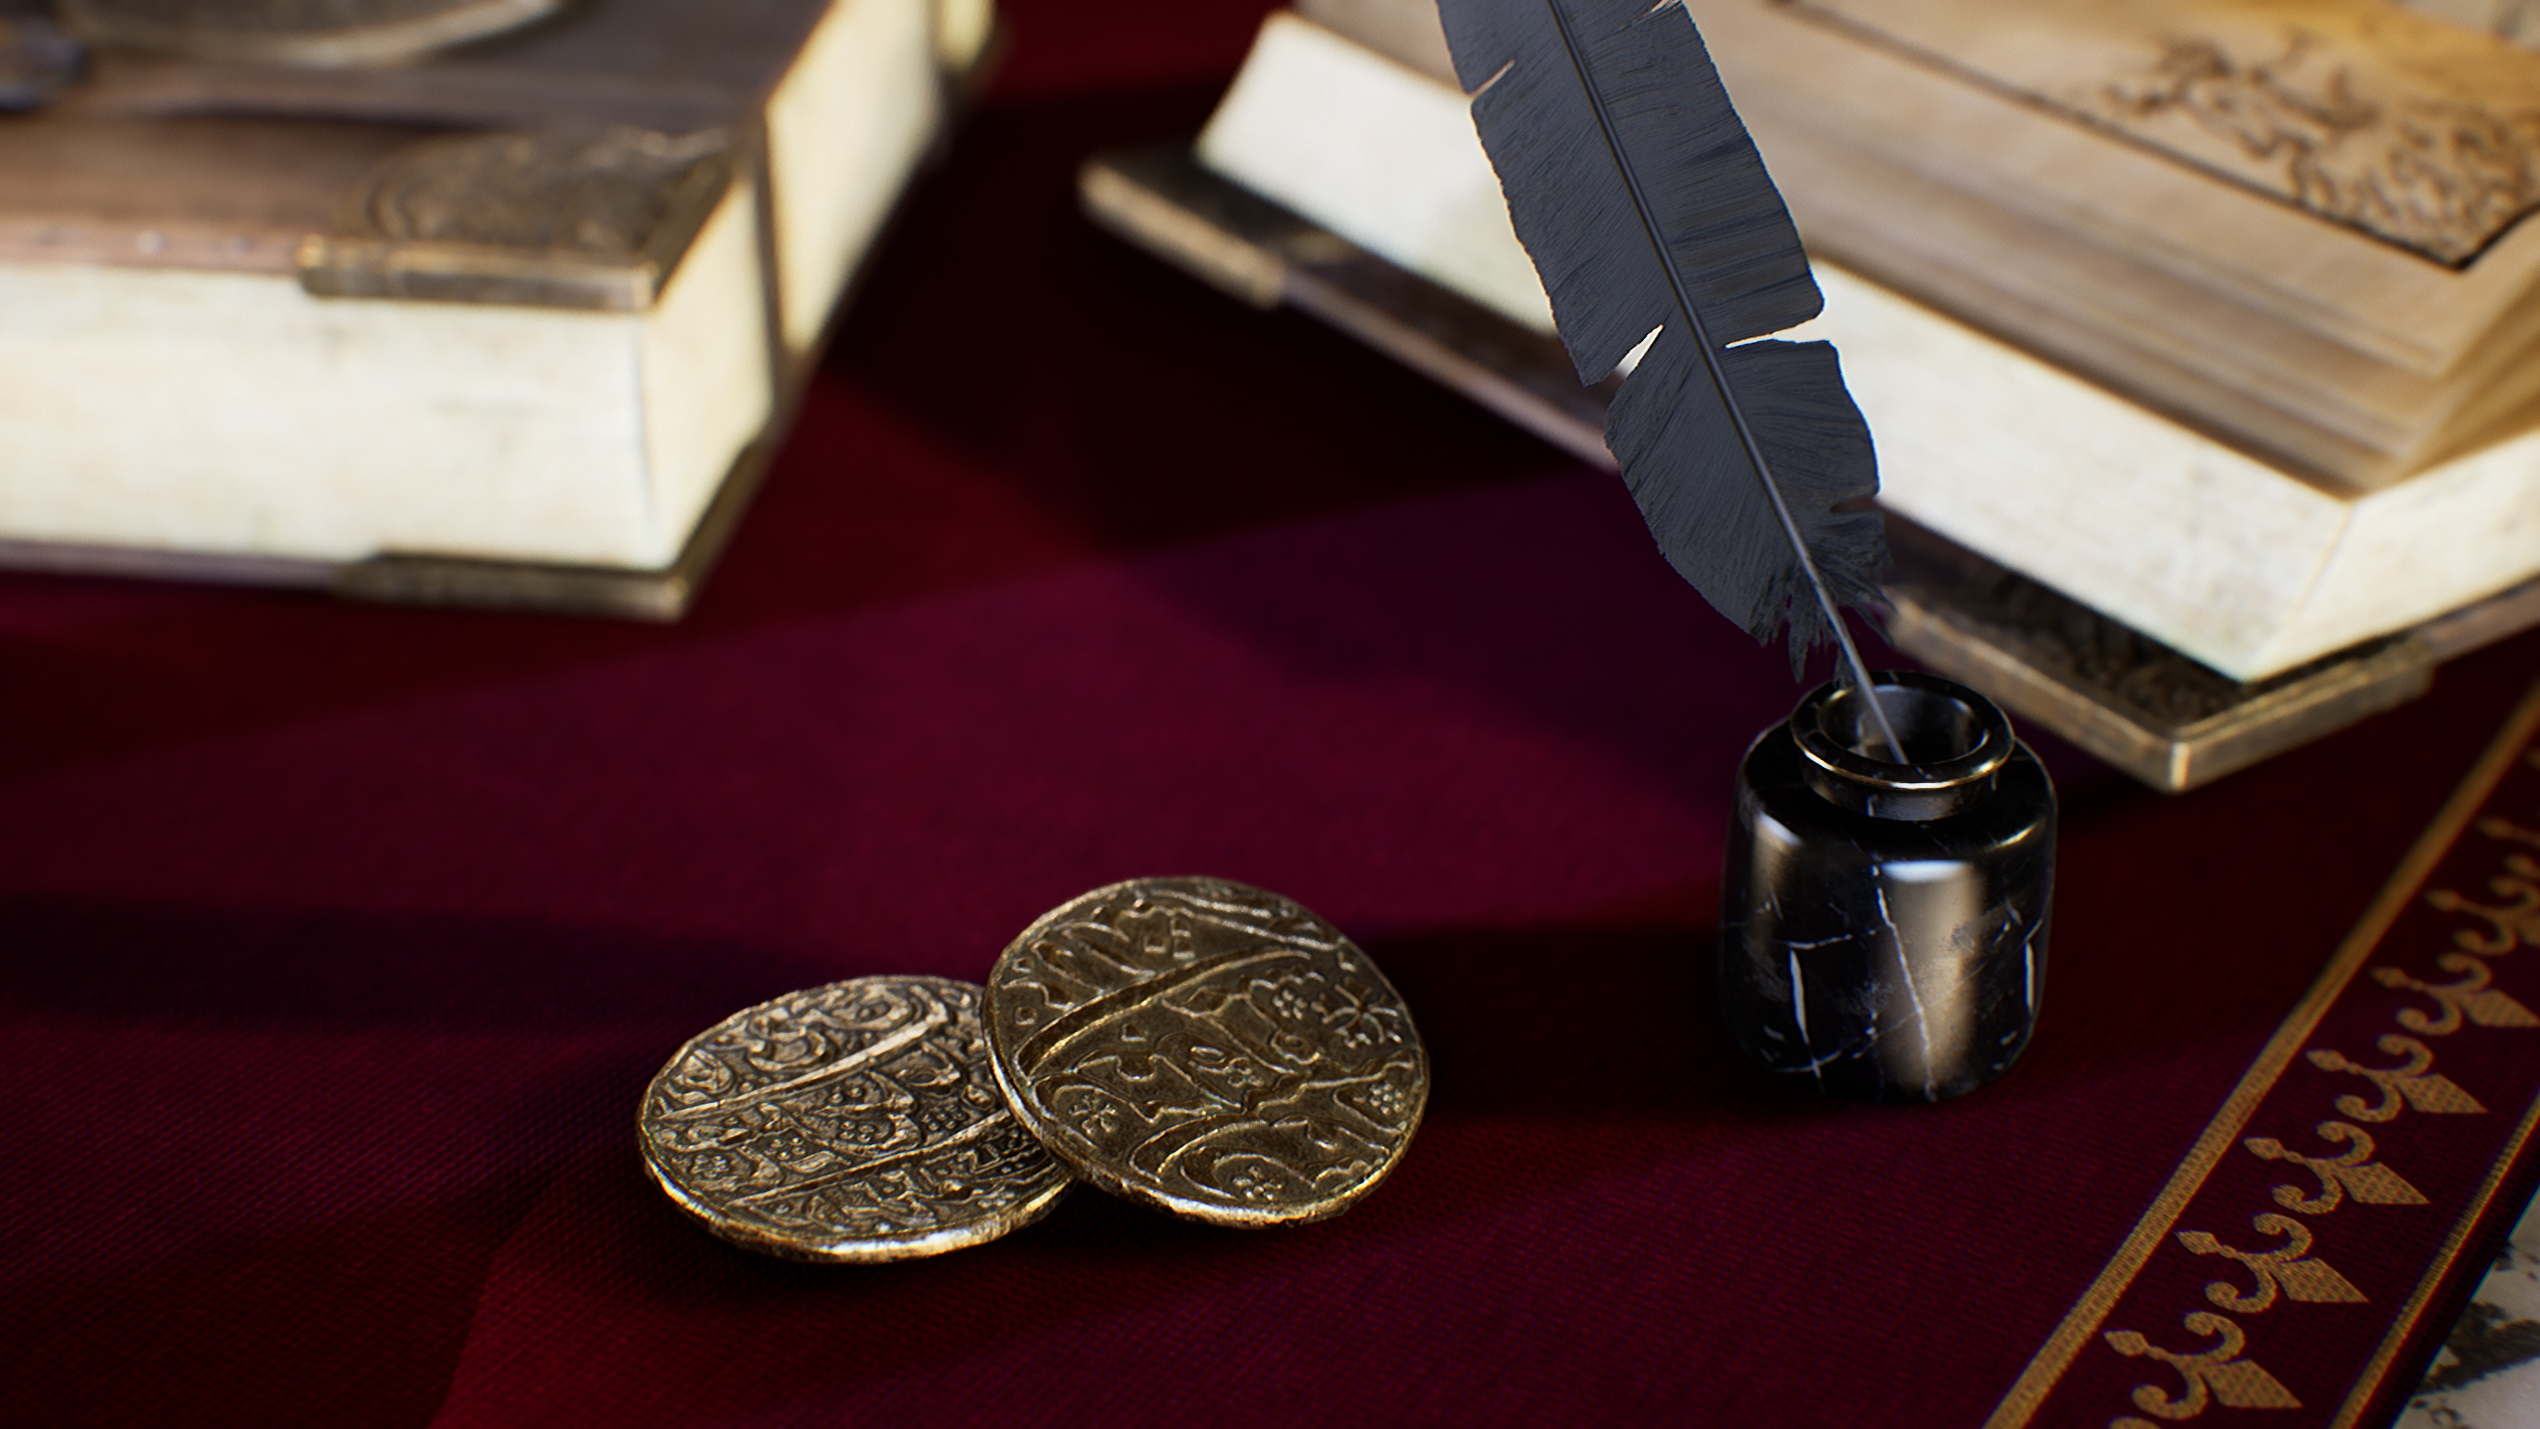 UE4 screenshot close up detailed shot of the coins, feather and ink holder